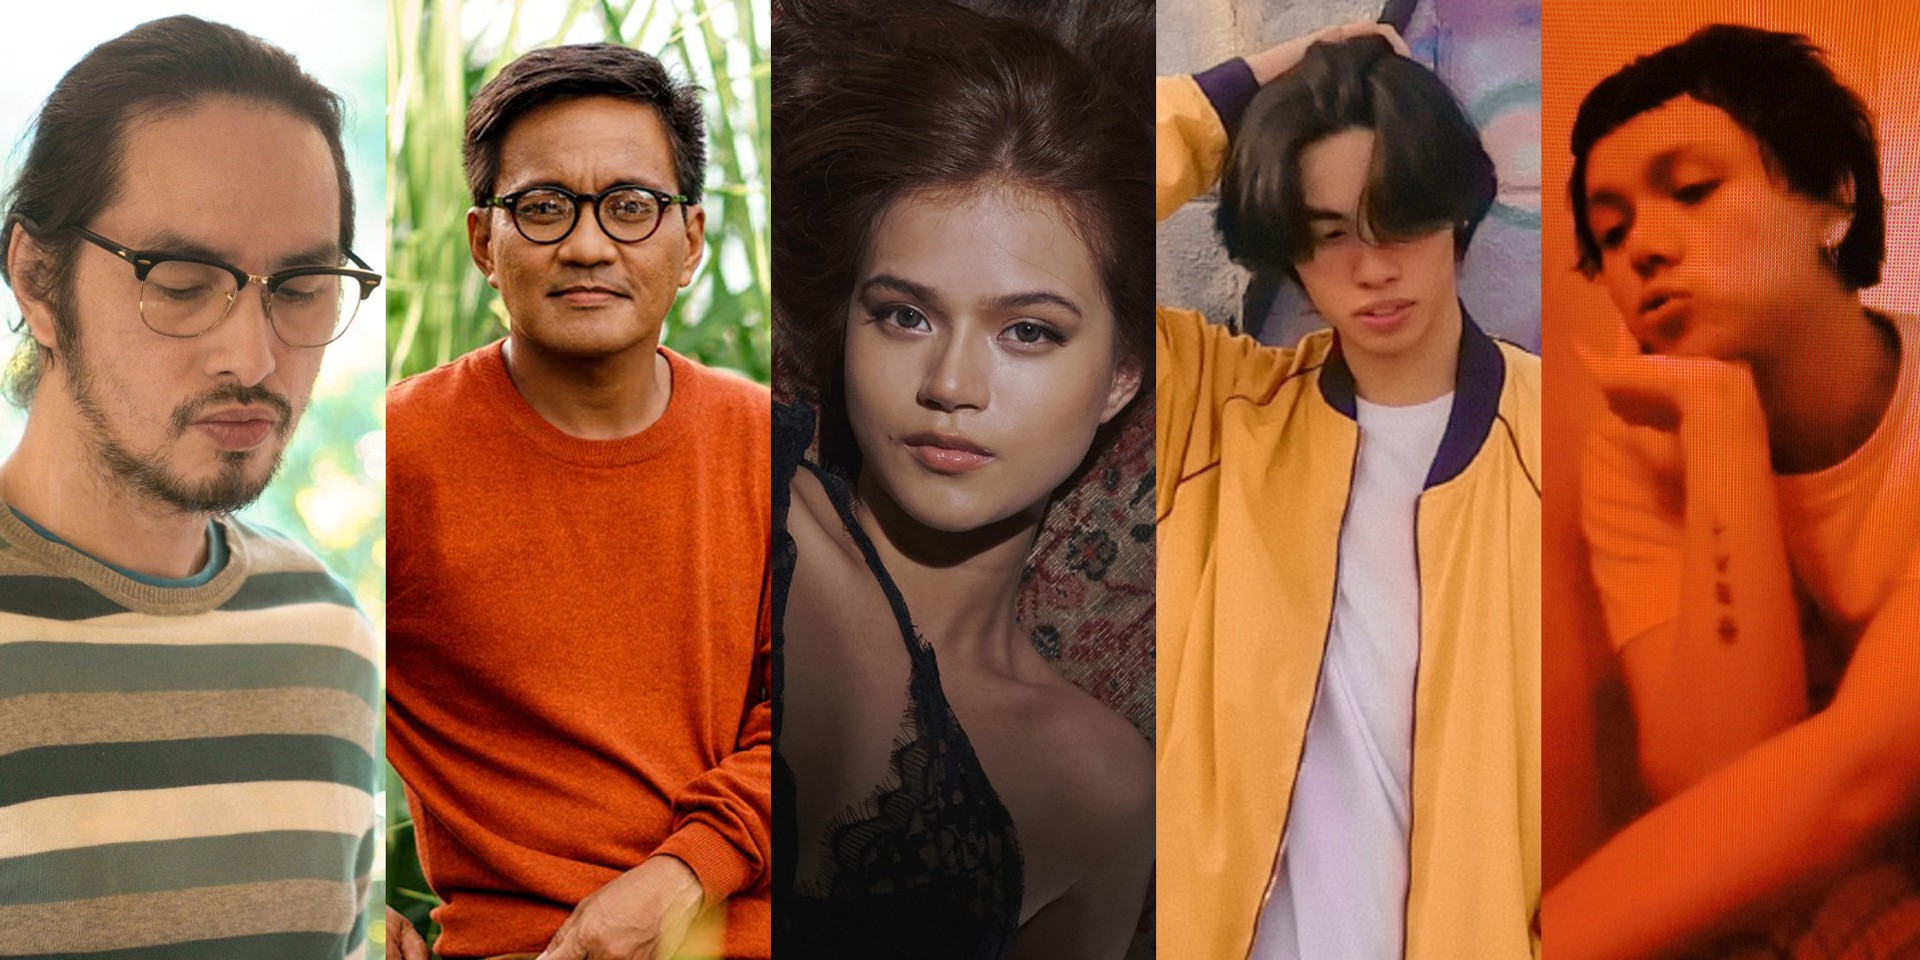 Get to know the artists on Balcony Entertainment's roster